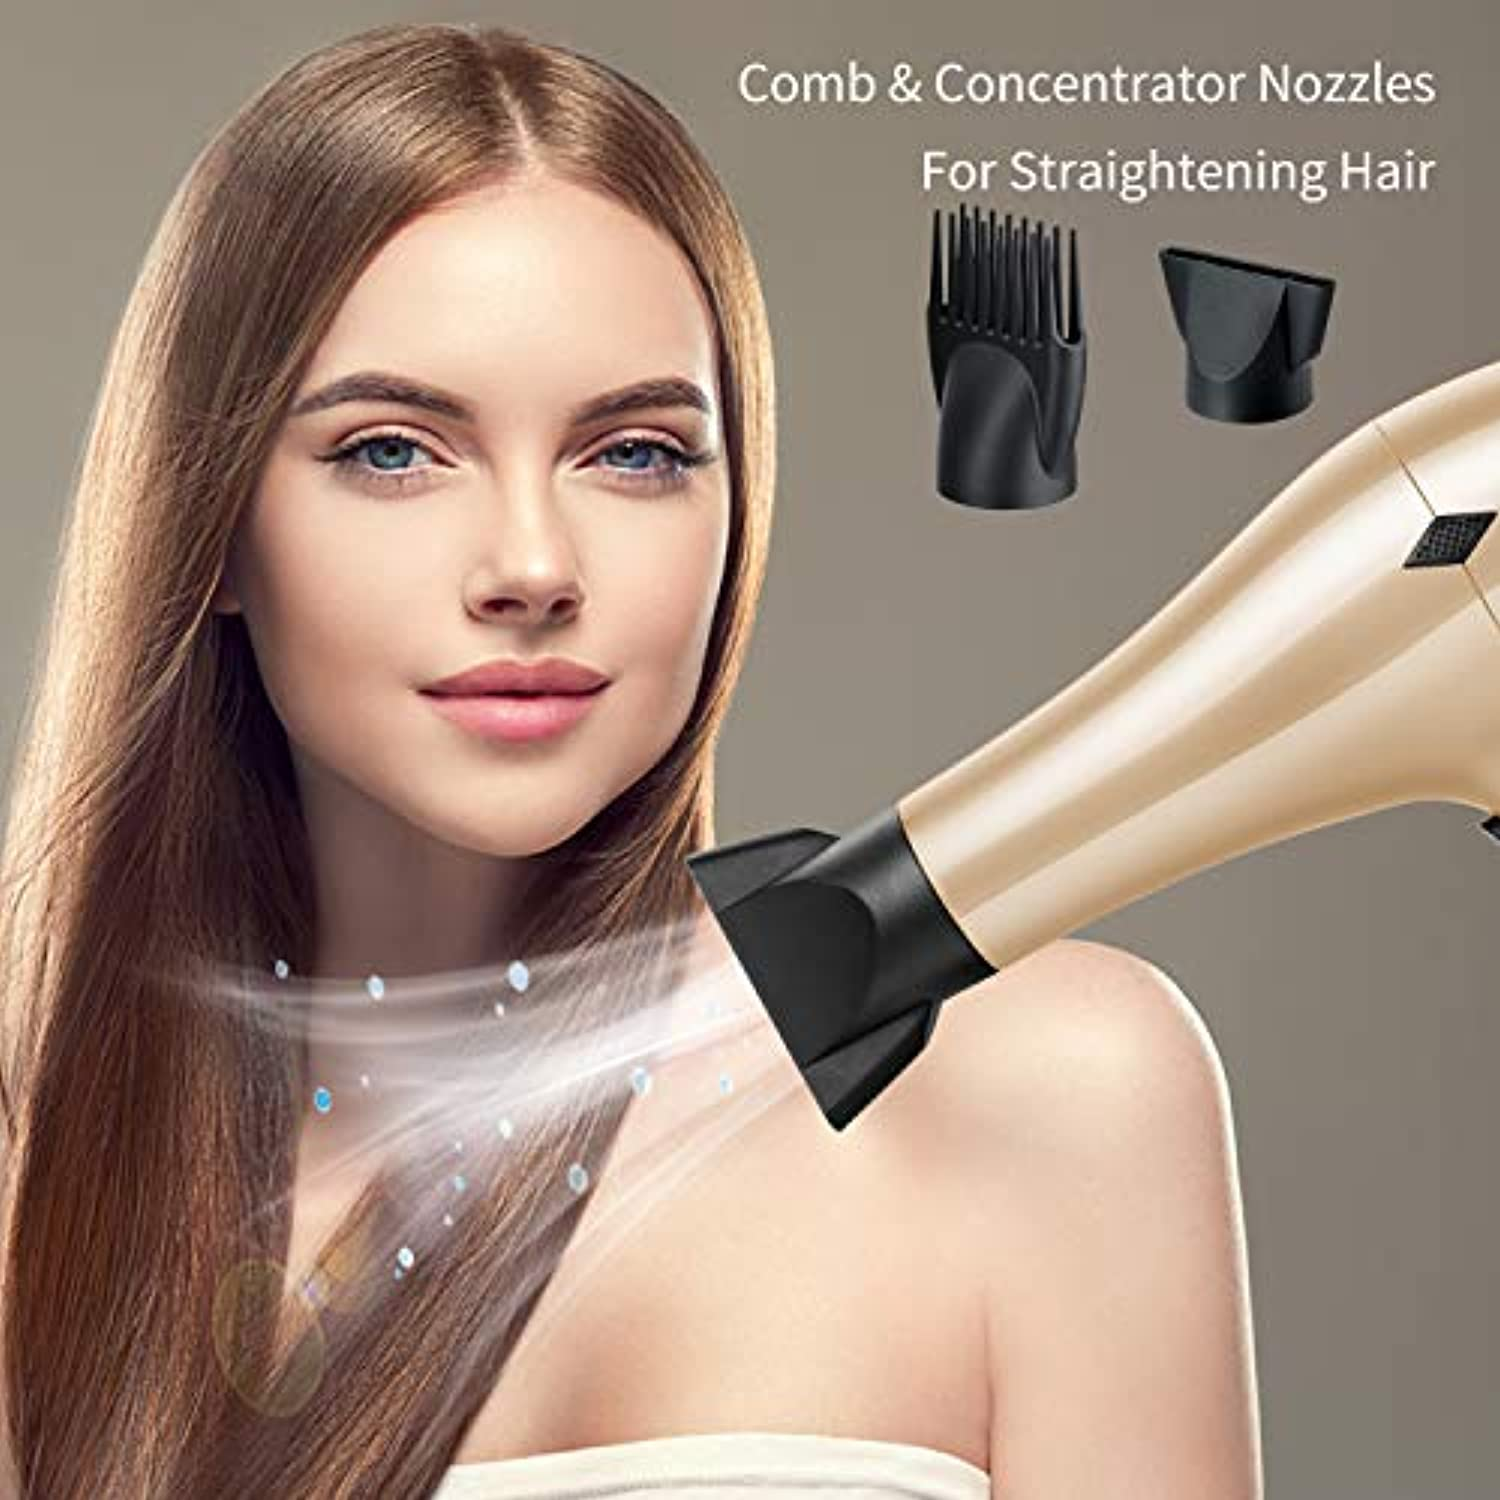 Classier: Buy NITION NITION Negative Ions Ceramic Hair Dryers Set with Diffuser,Comb,Nozzle Attachments,Ionic Blow Dryer Powerful 1875 Watt Quick Drying,2 Speed / 3 Heat Settings,Cool Shot Button,Lightweight,Gold